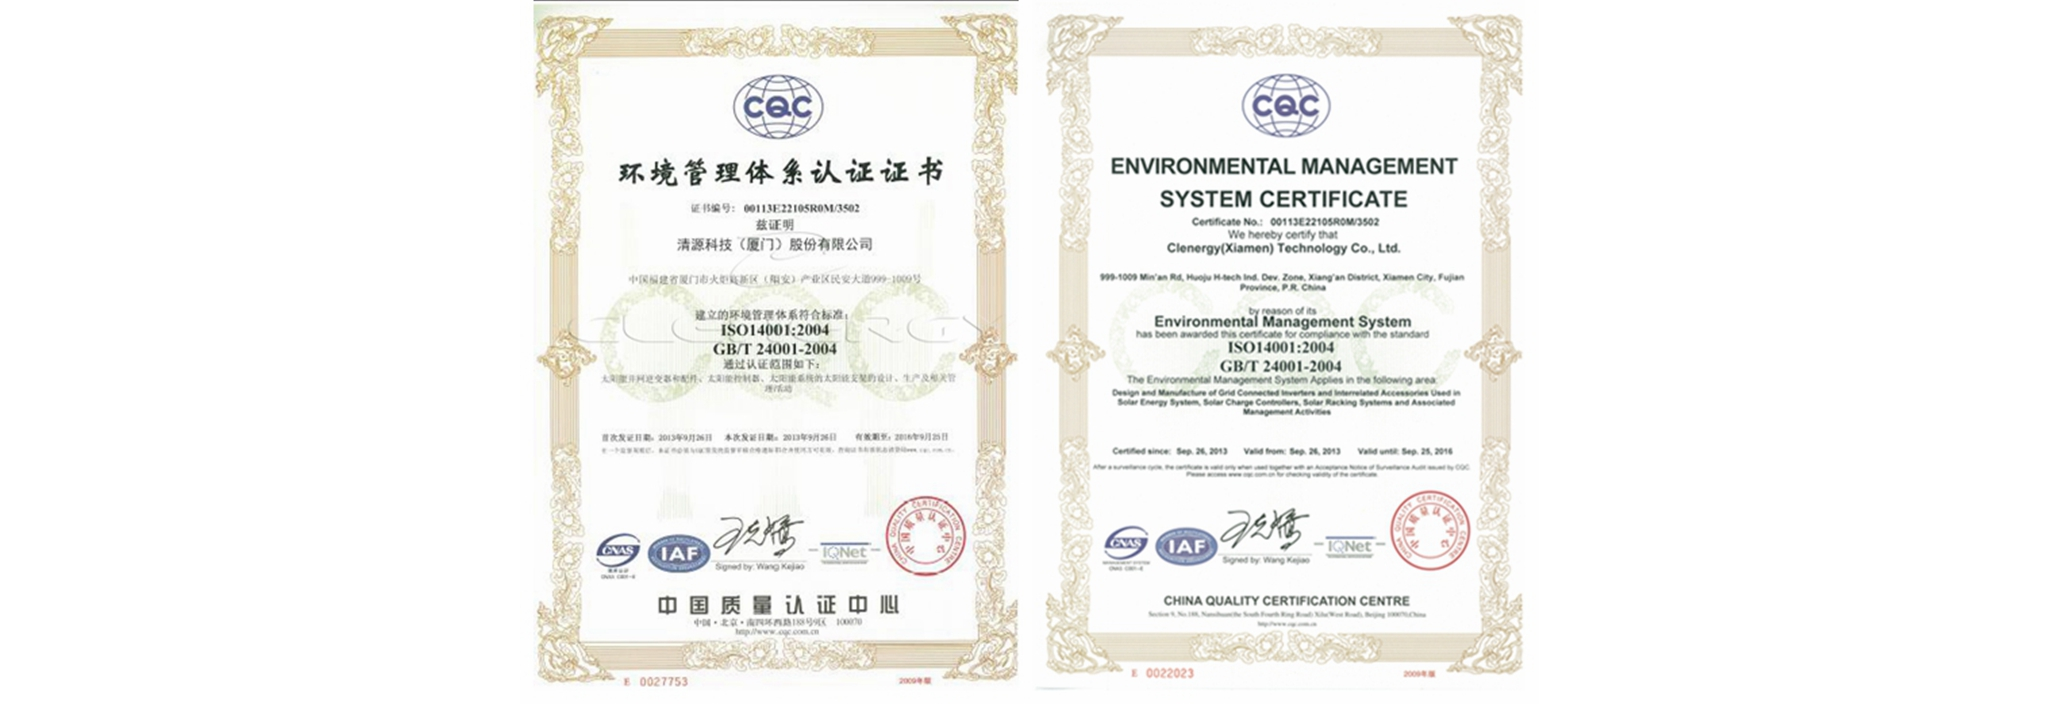 Clenergy Earns ISO 14001 Environmental Management System Certification